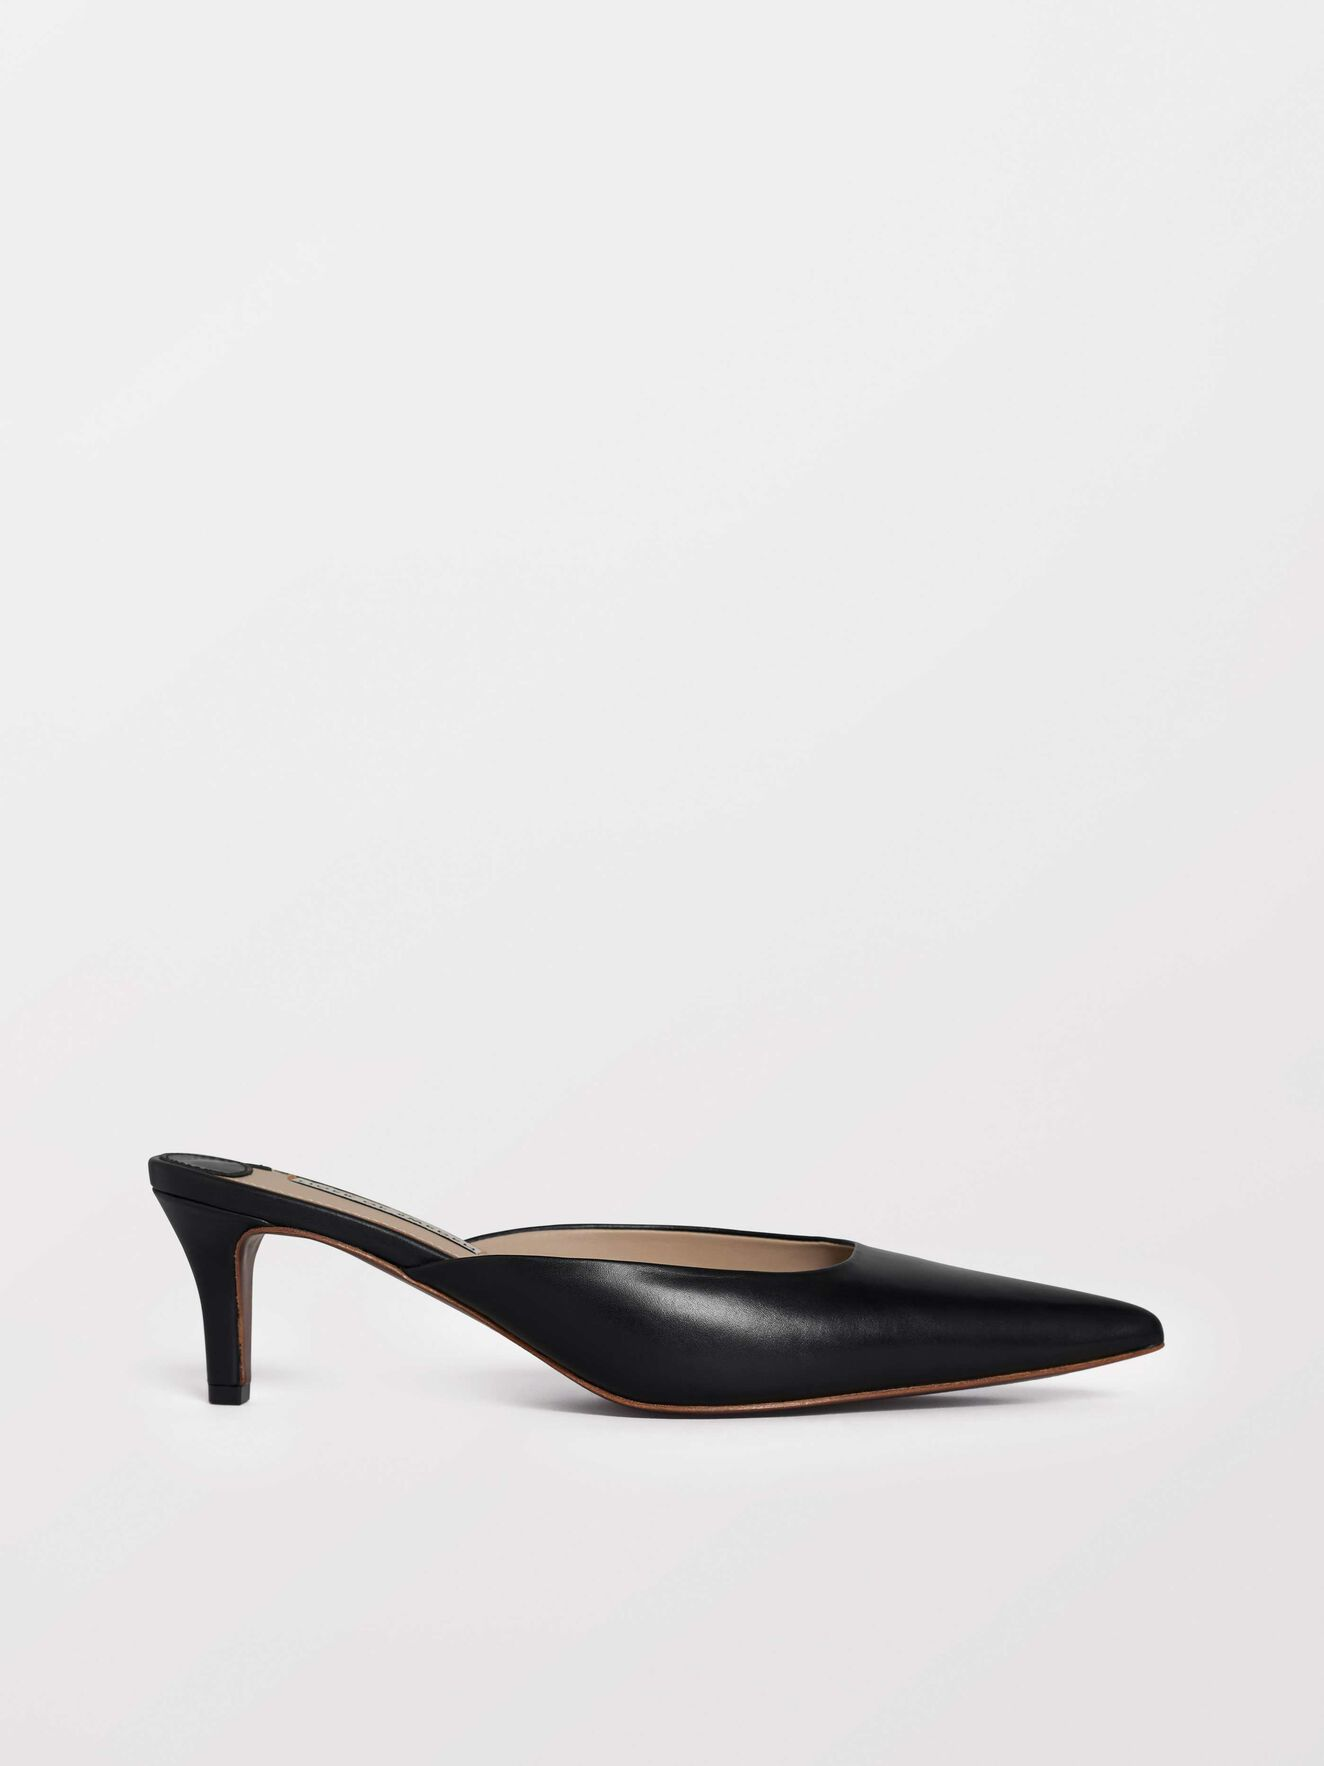 Senti Mules in Black from Tiger of Sweden